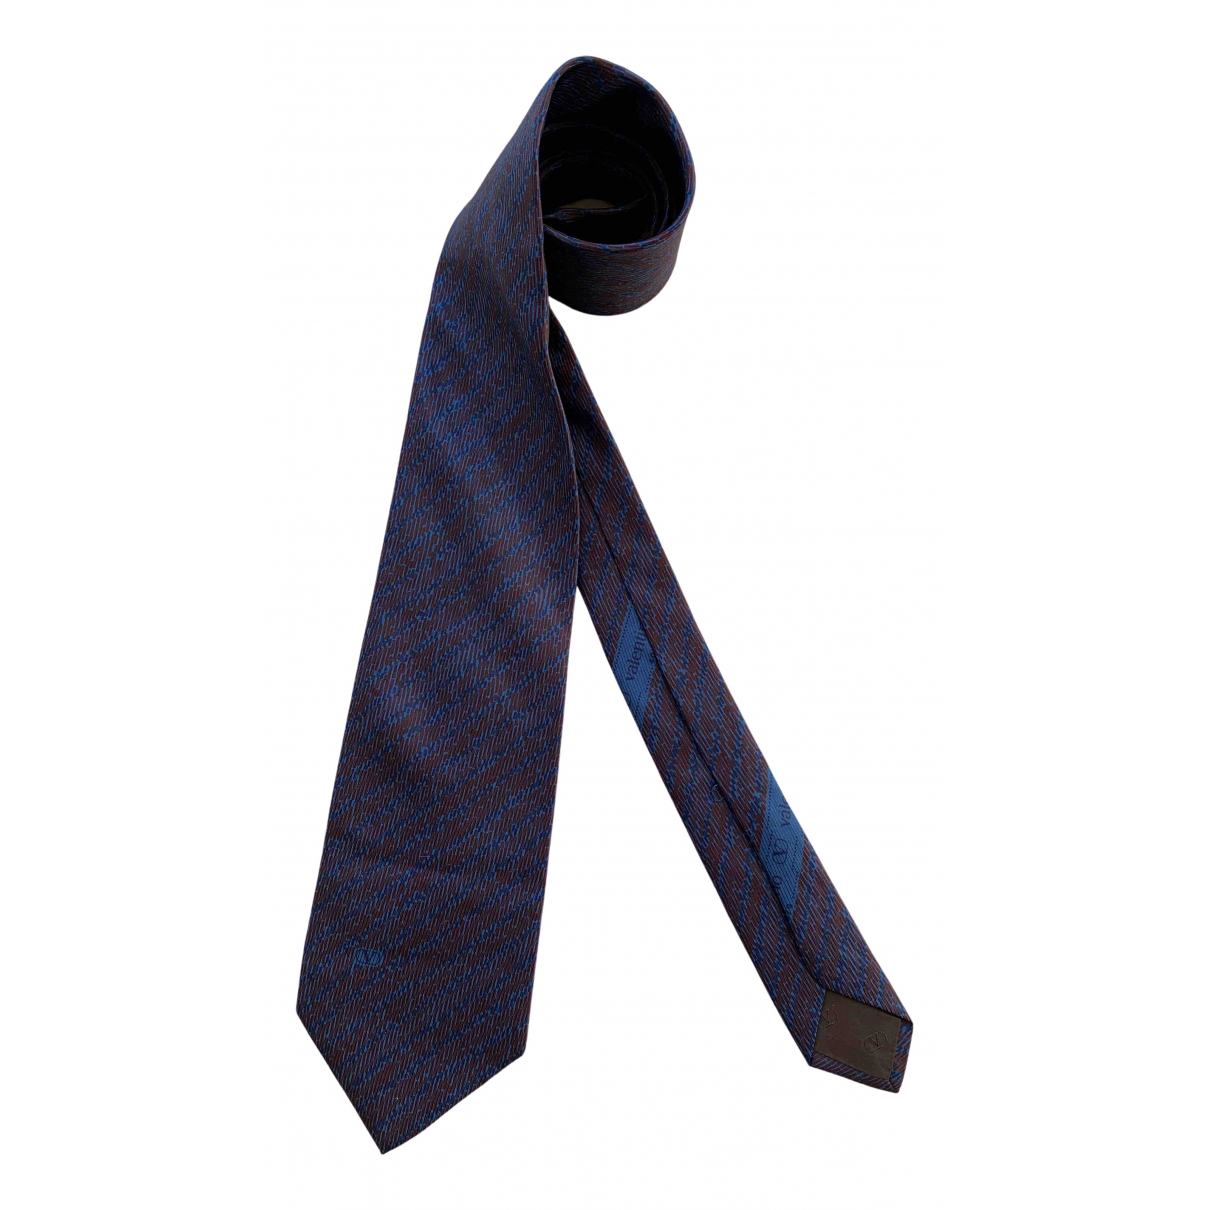 Valentino Garavani N Blue Silk Ties for Men N